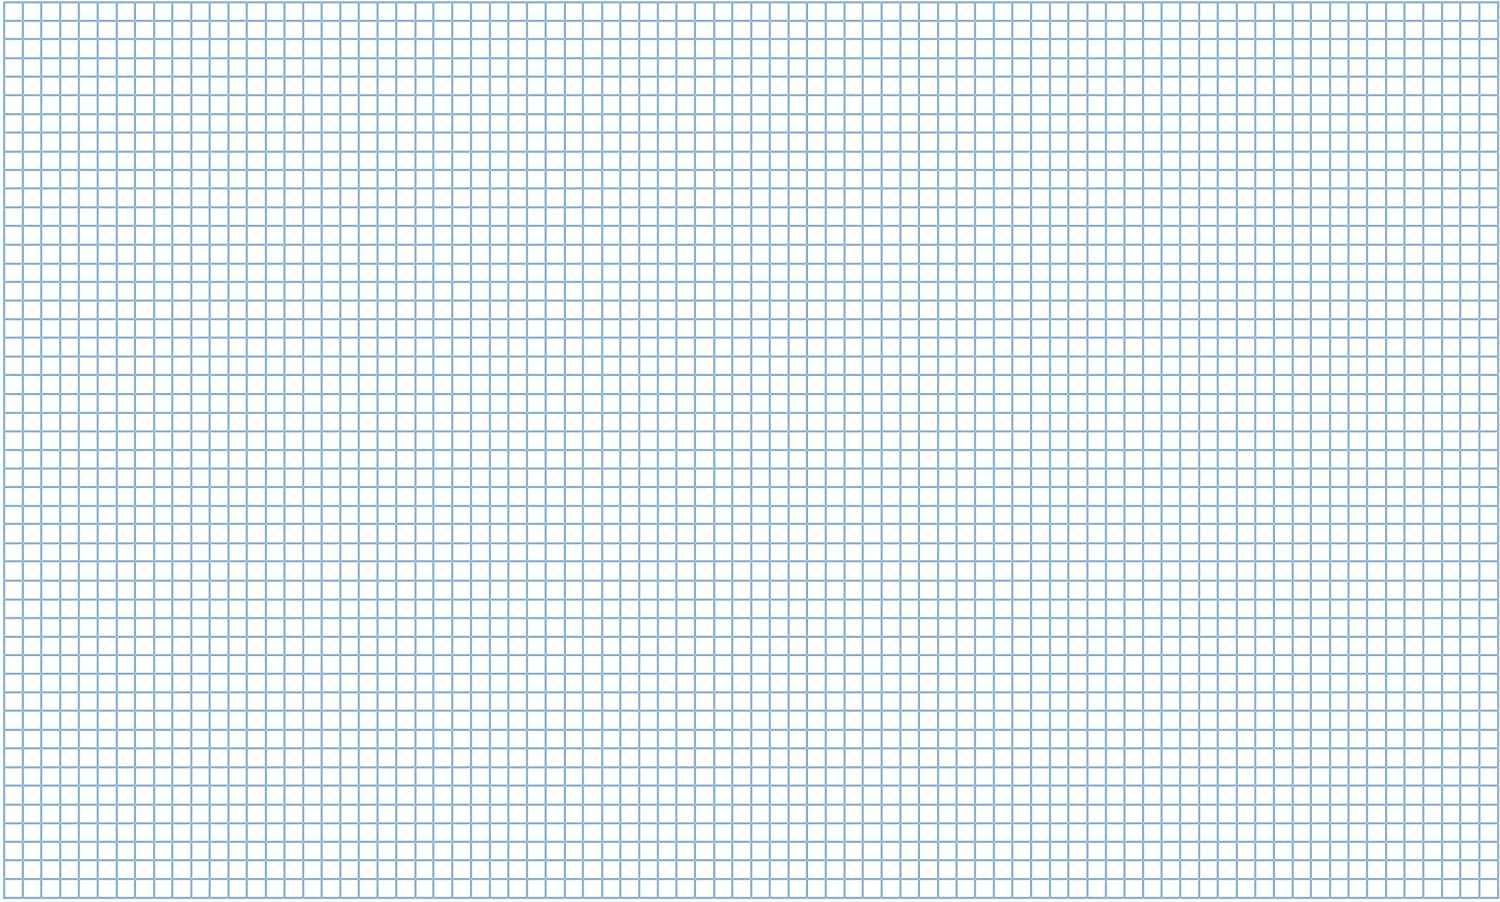 Graph Paper Images Galleries With A Bite